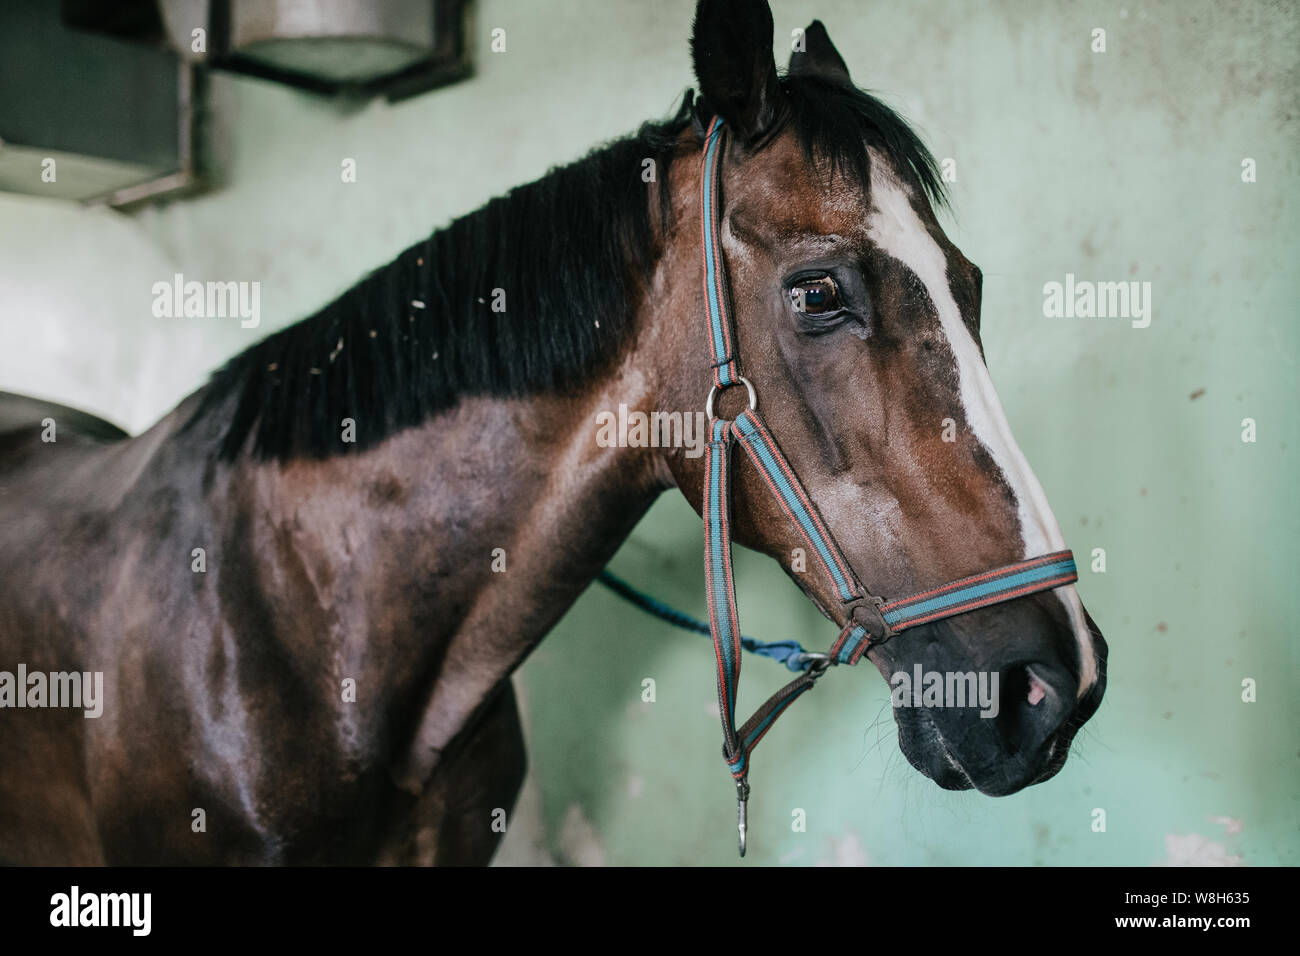 Muzzle horse closeup with bridle, equestrian base Stock Photo